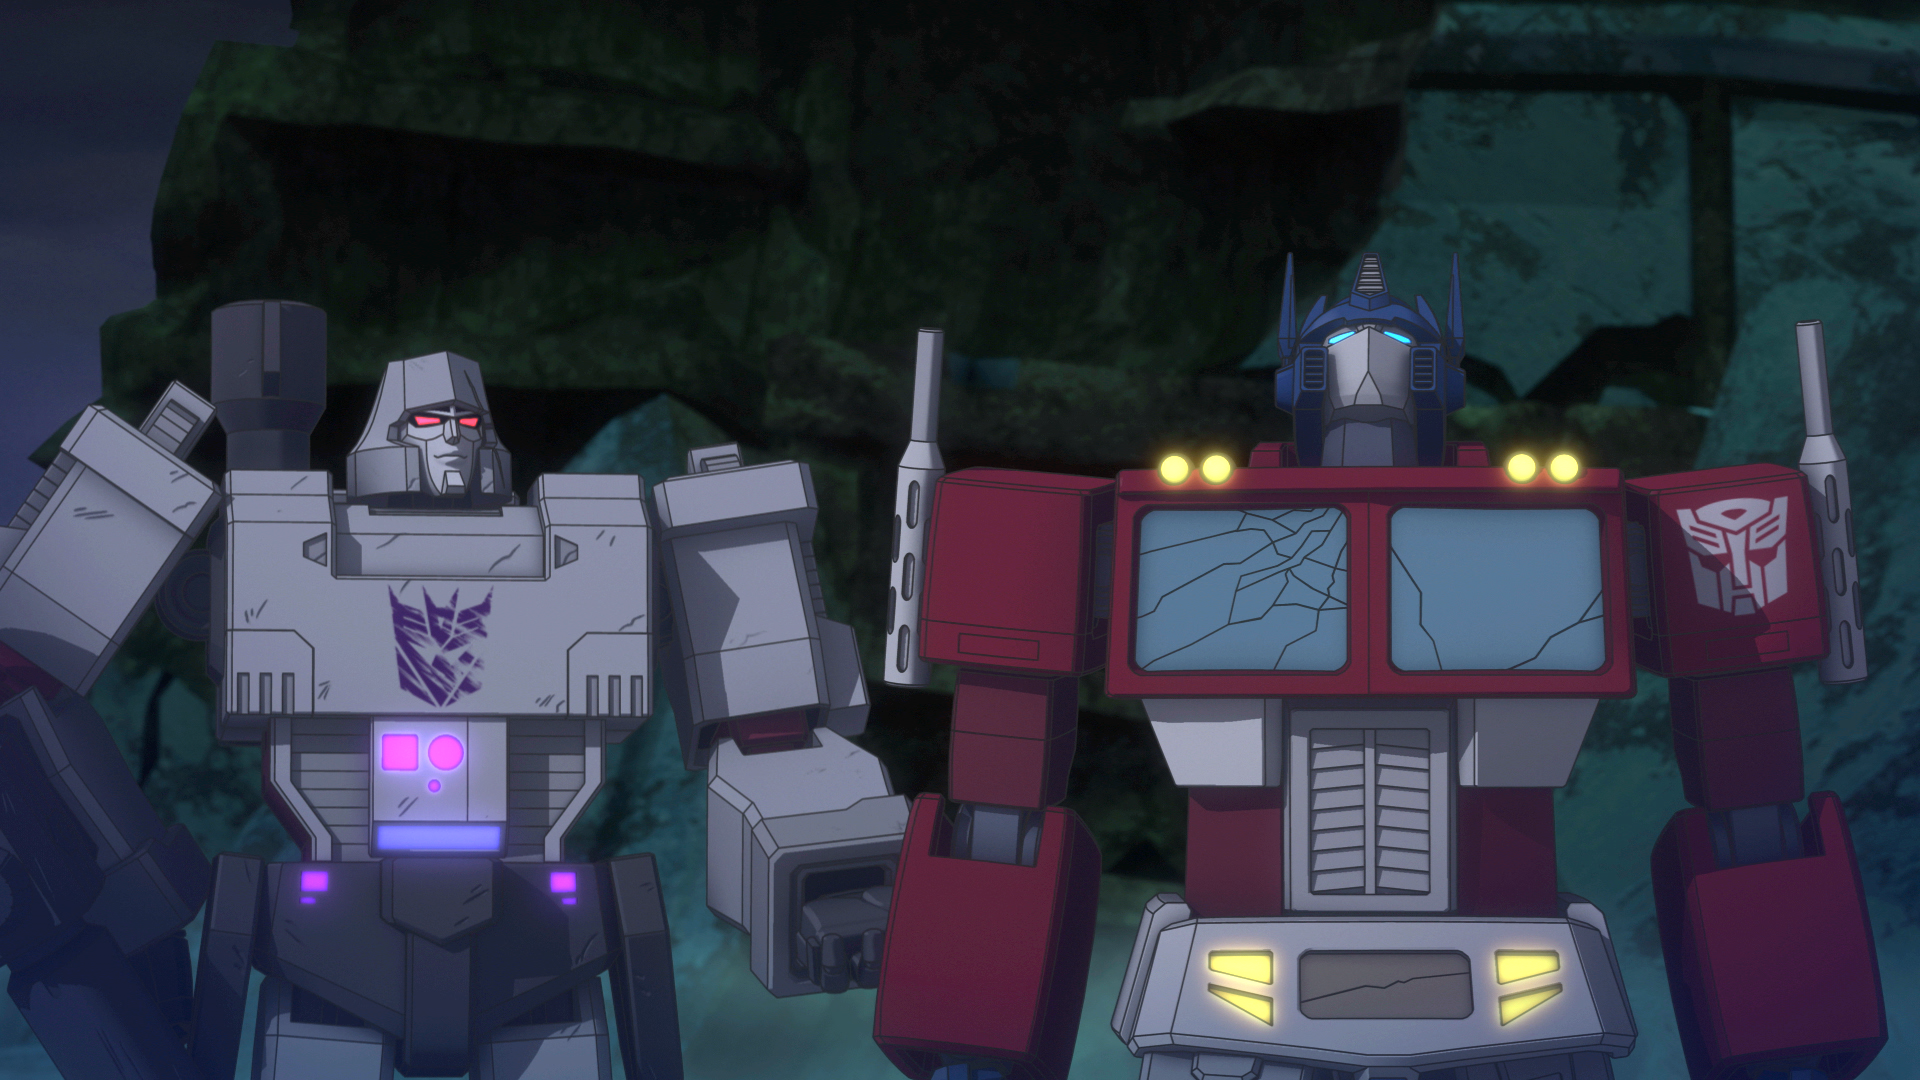 transformers: titans return trailer features peter cullen as optimus